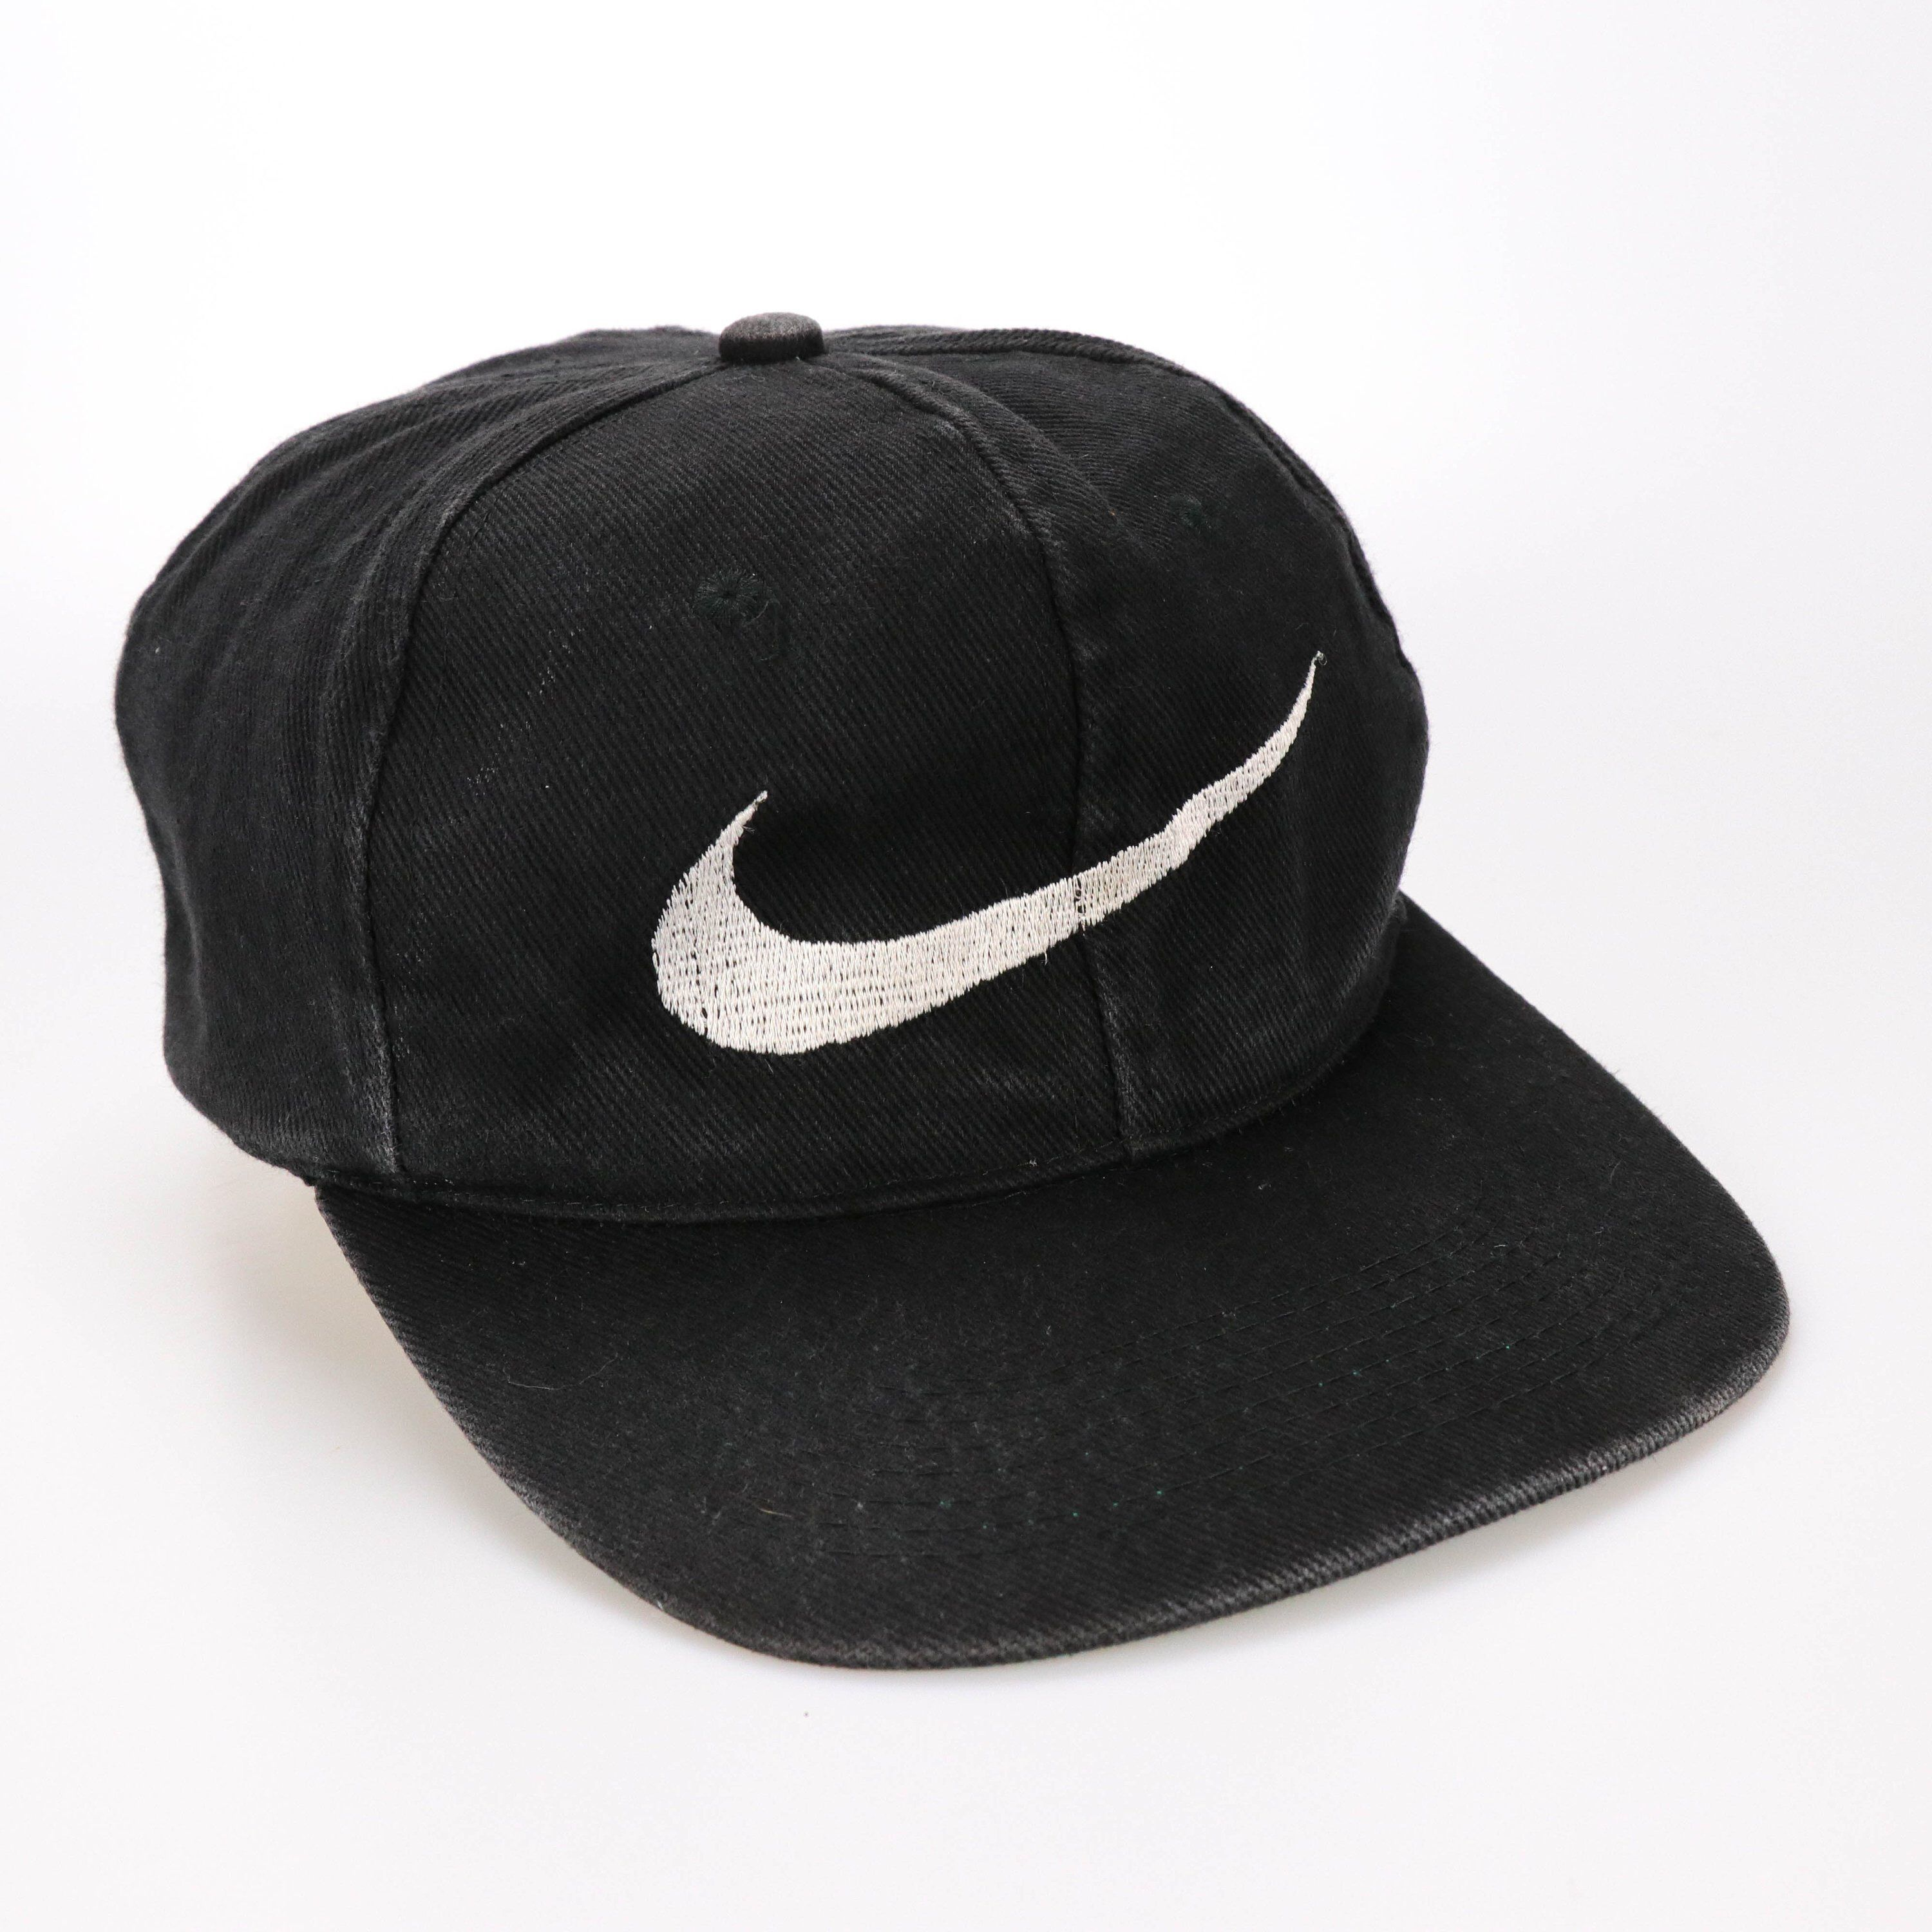 404e3c76e83 Excited to share the latest addition to my  etsy shop  Vintage 80s 90s Nike  swoosh Logo Cap Hat Snapback  accessories  hat  black  vintage  80s  90s   nike ...